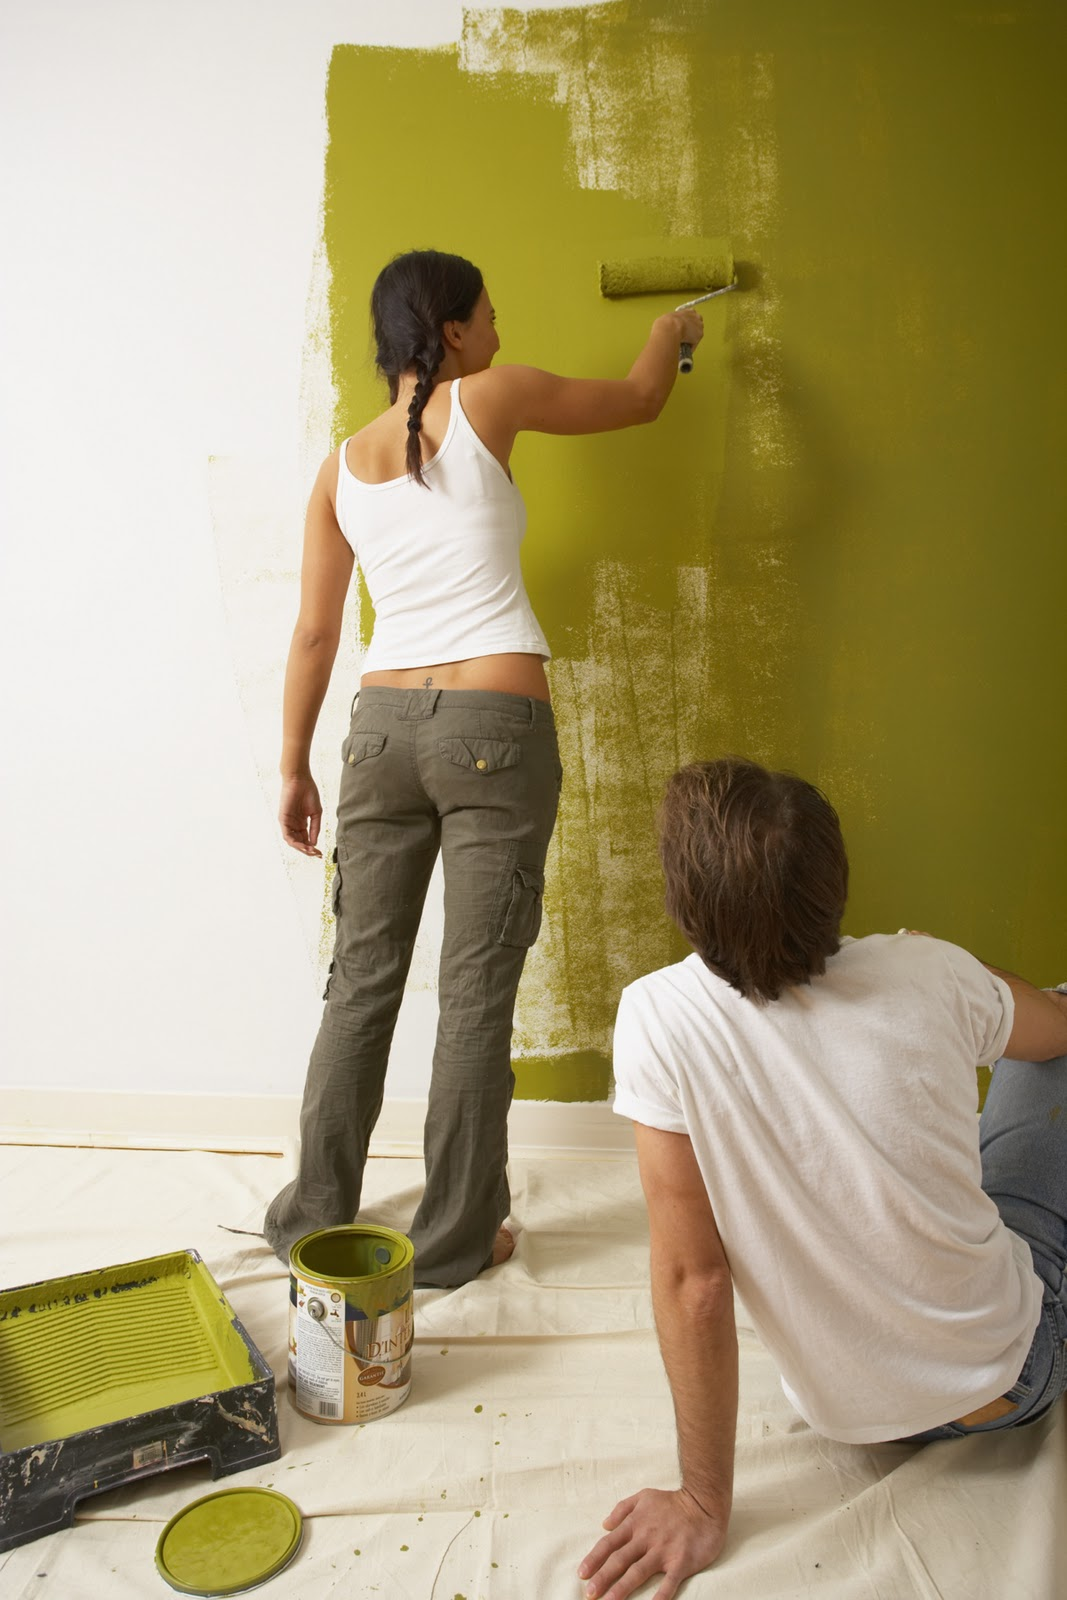 Whilly Bermudez For Home Improvement America Easy Home Improvement Projects For Weekend Warriors